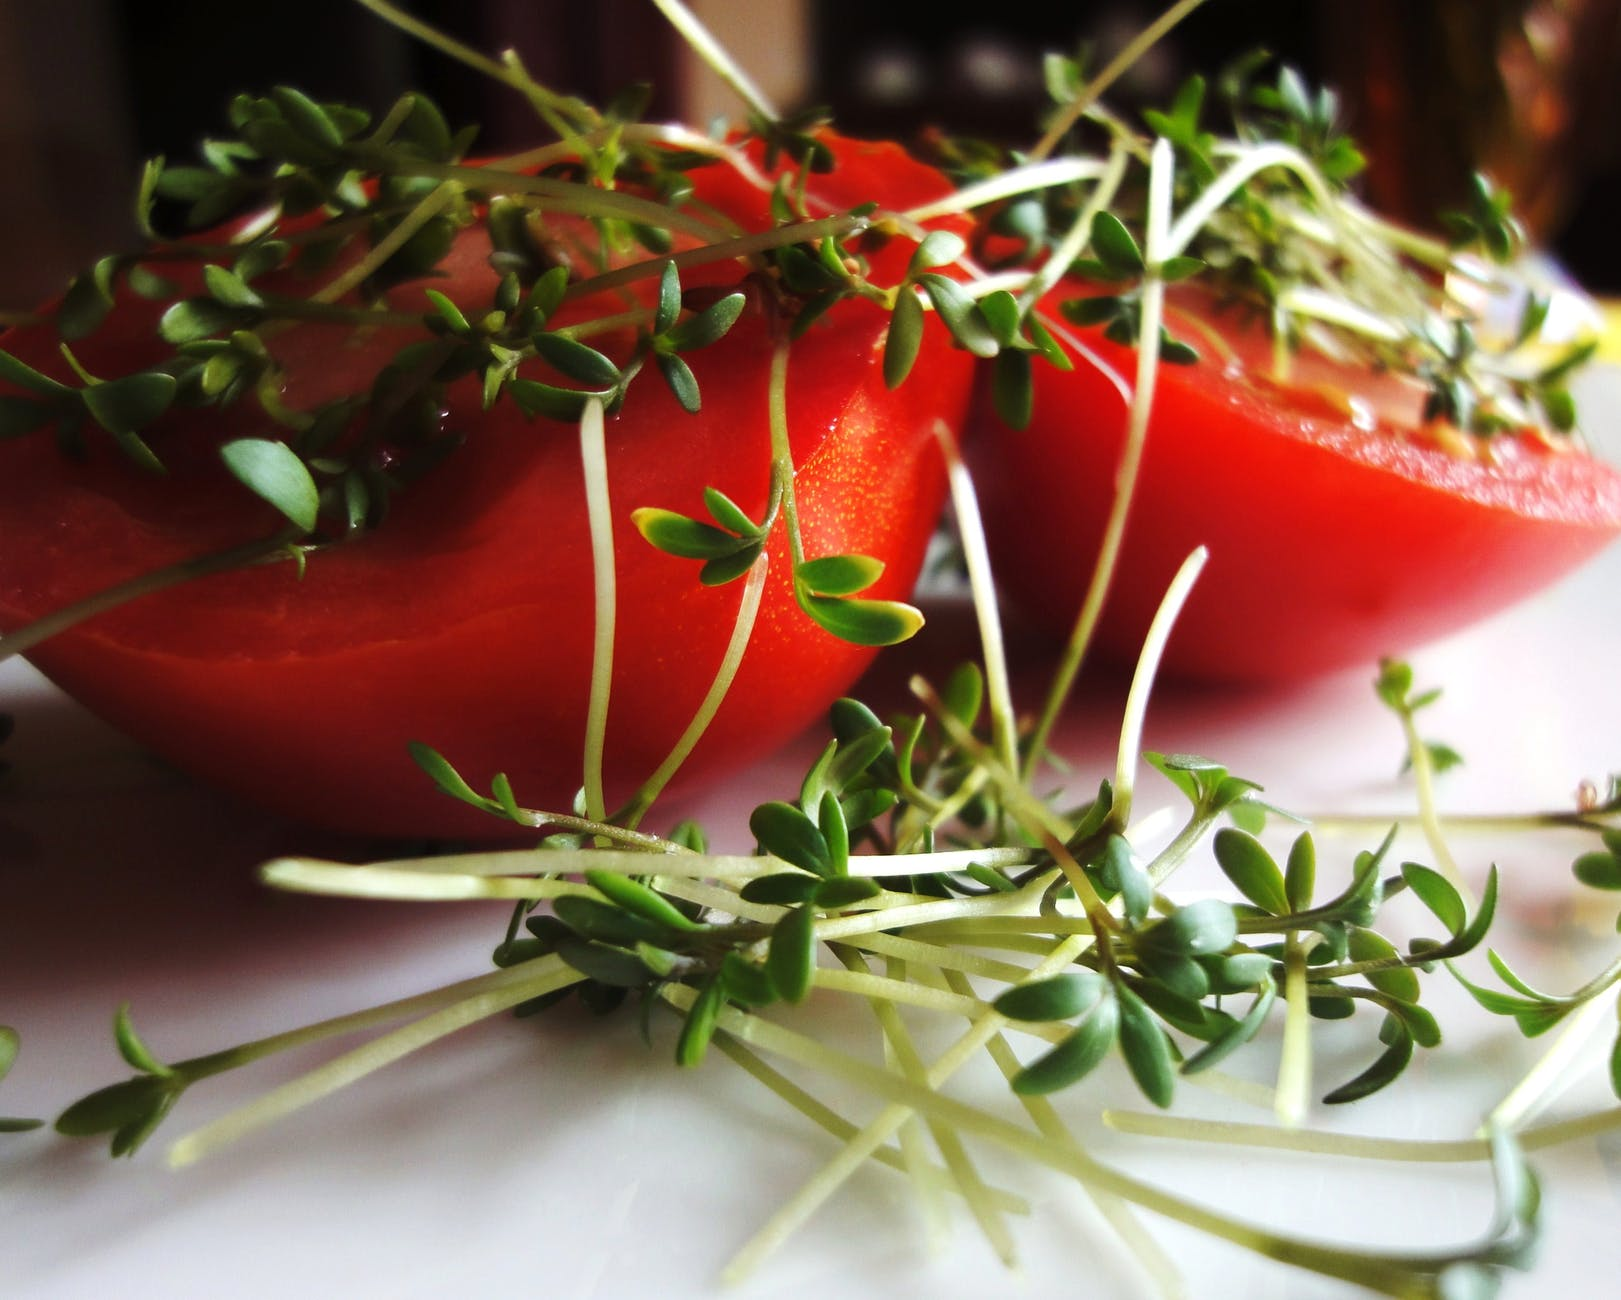 cuckooflower-tomato-breakfast-red-84463.jpeg